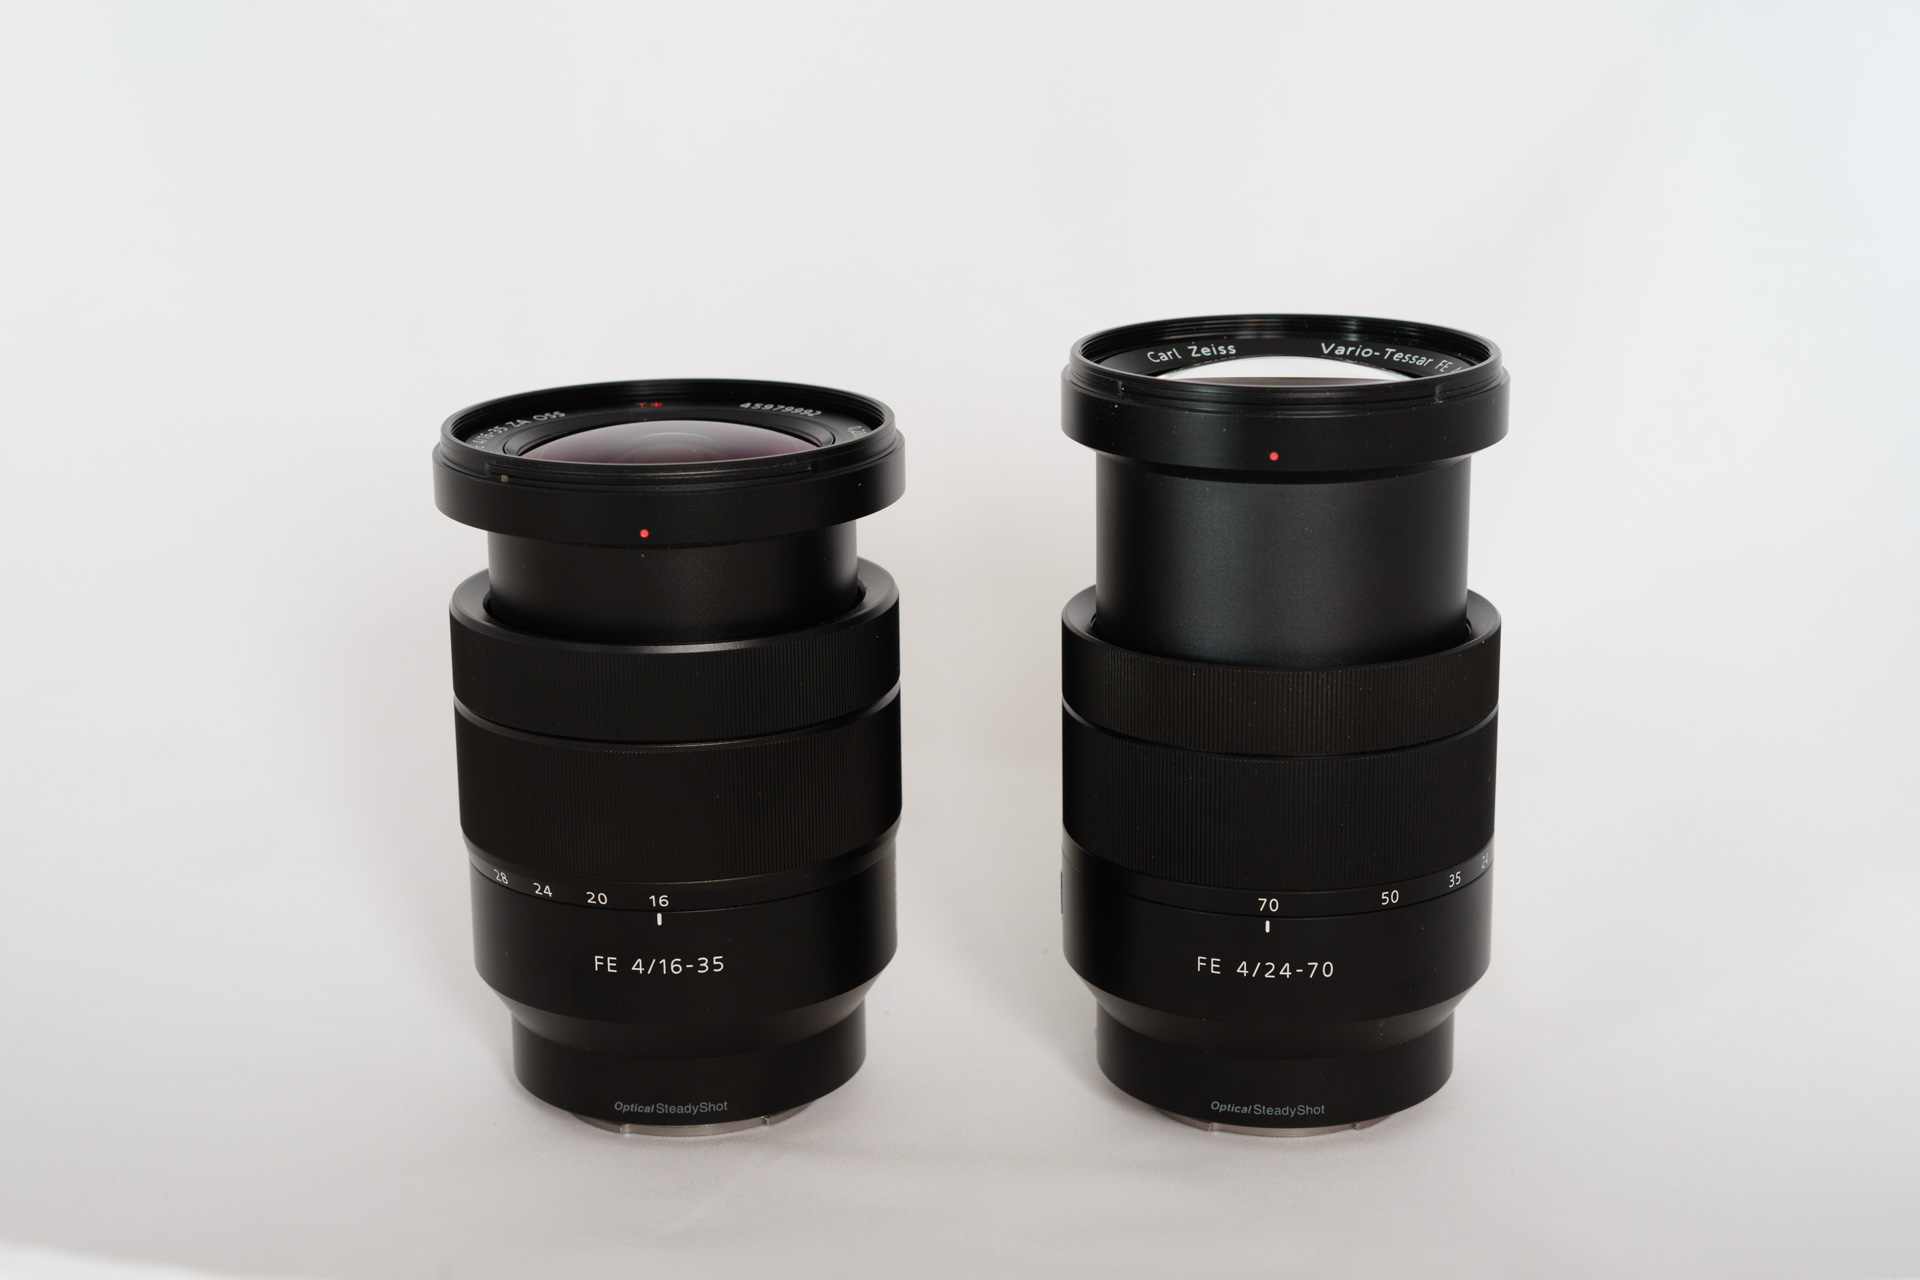 Sony Zeiss FE 16-35mm Lens